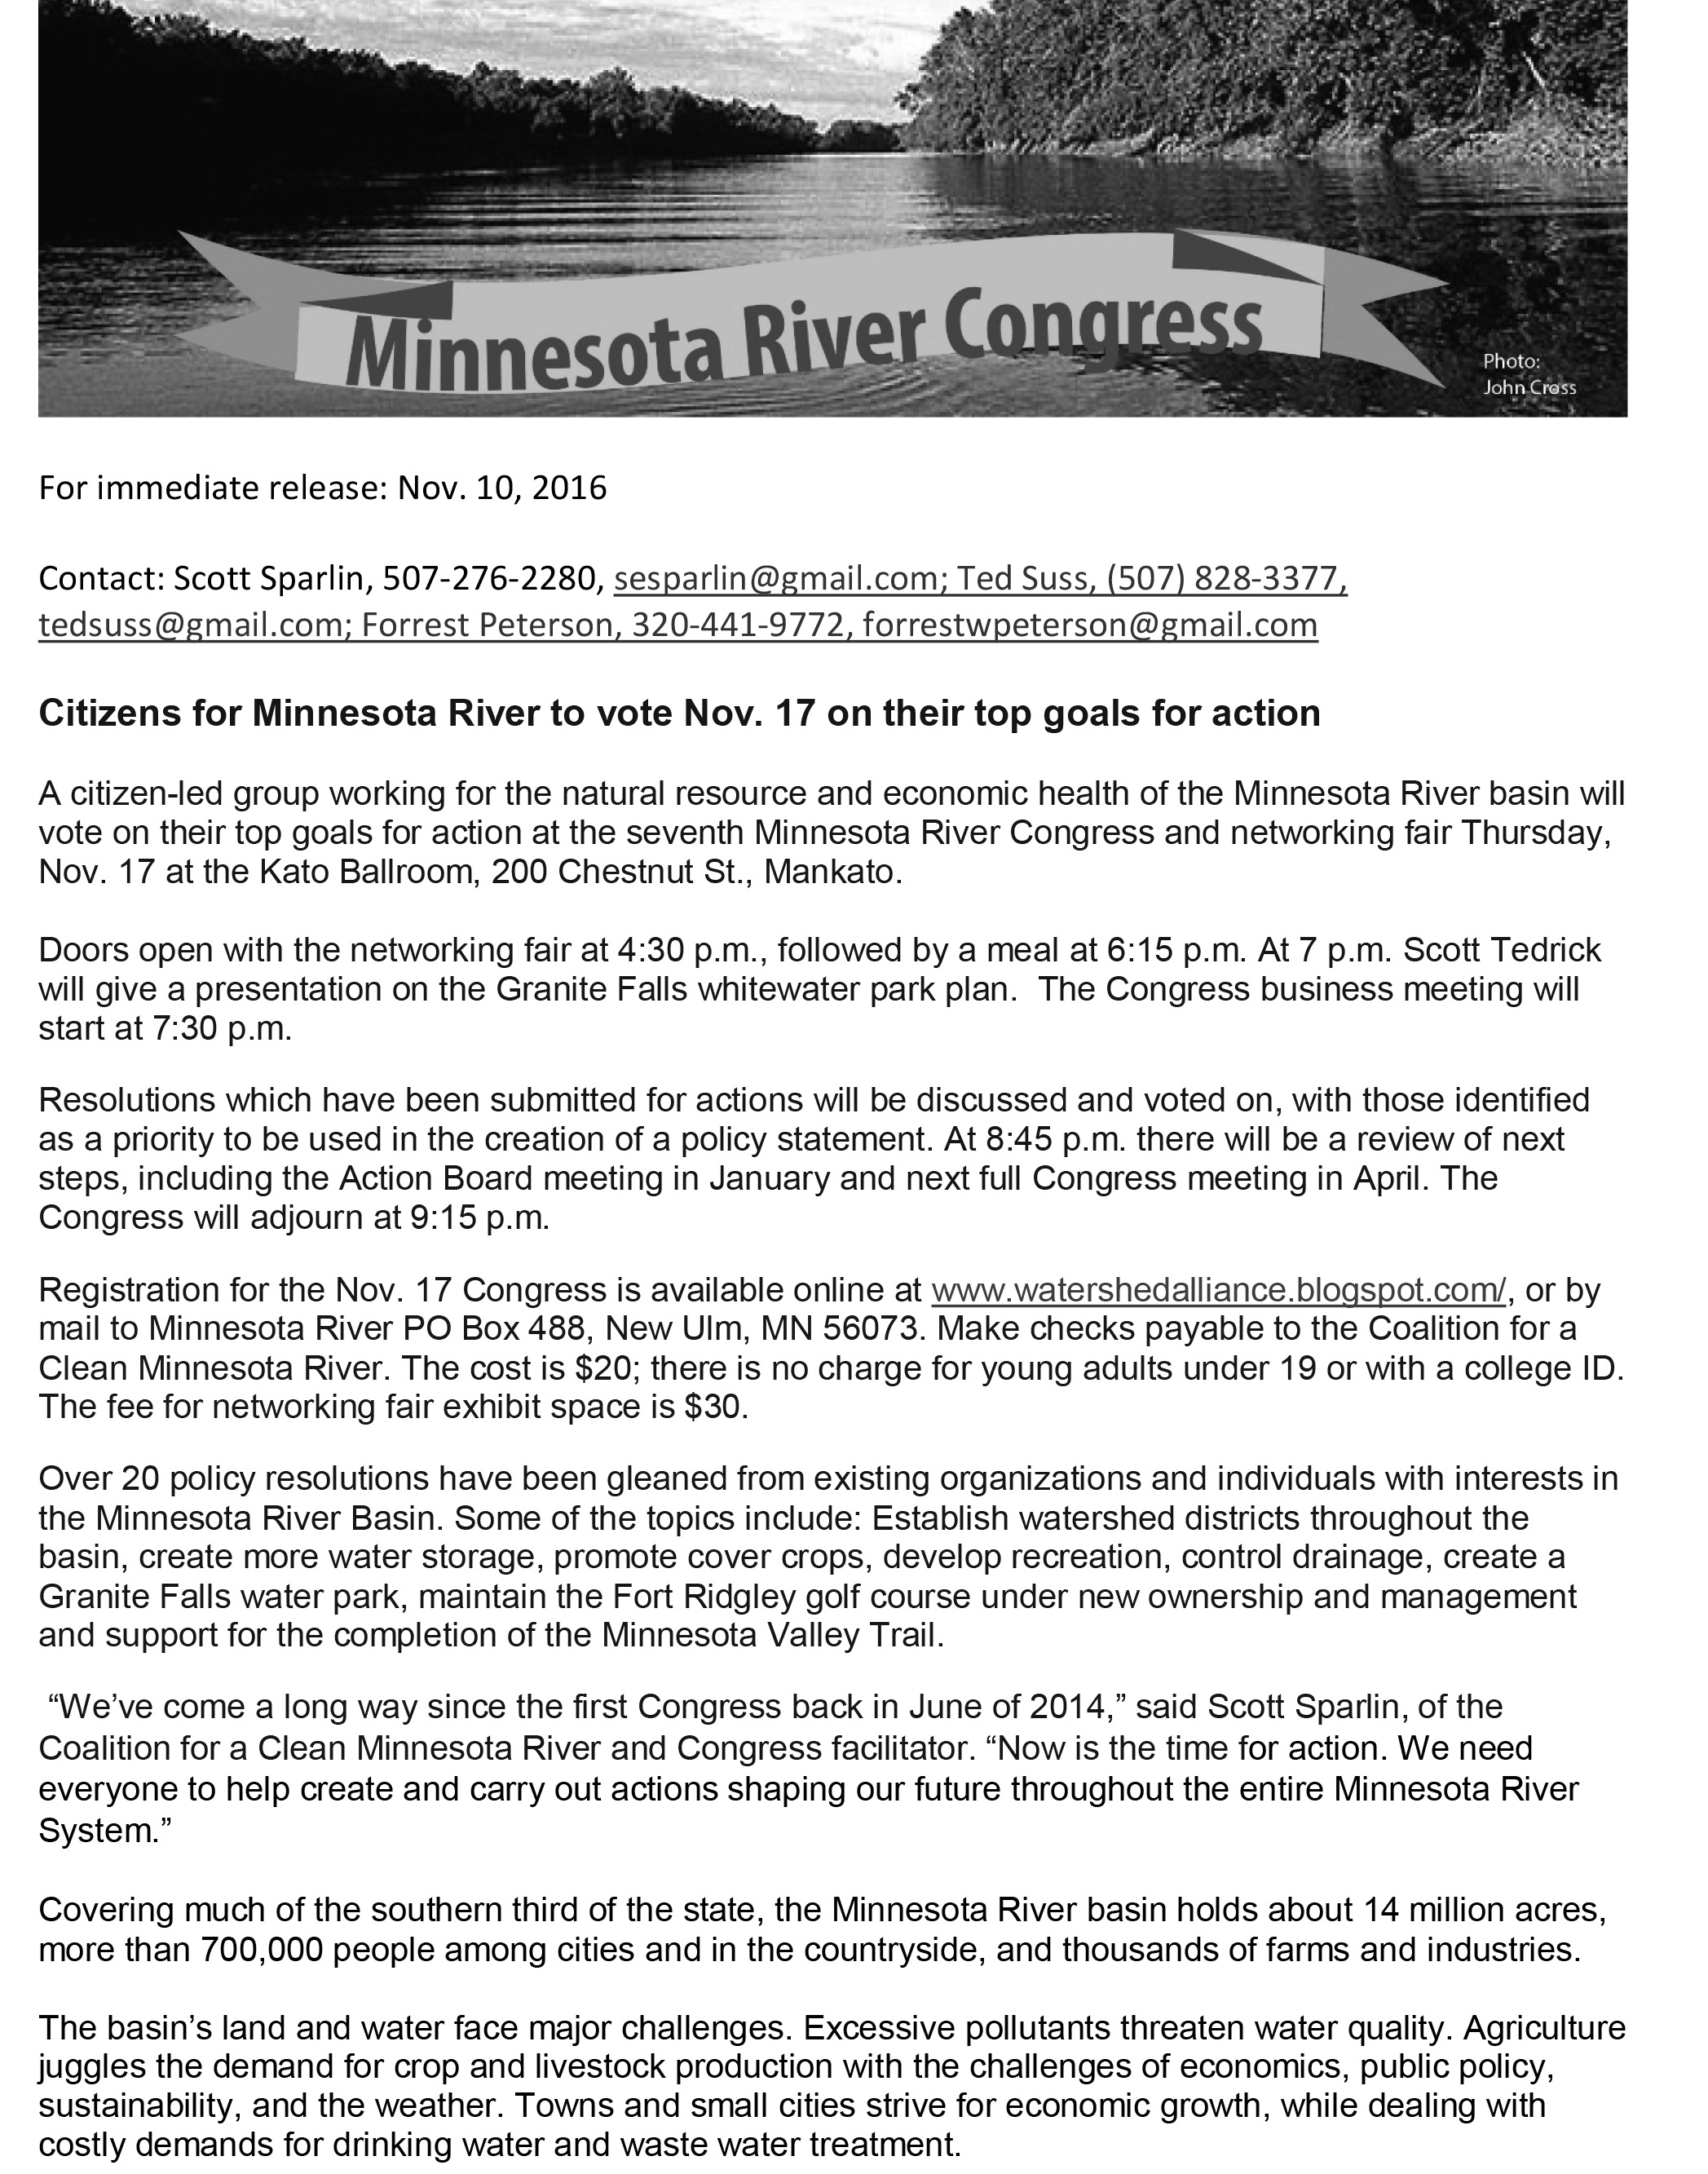 11102016News release - 7th Minnesota River Congress